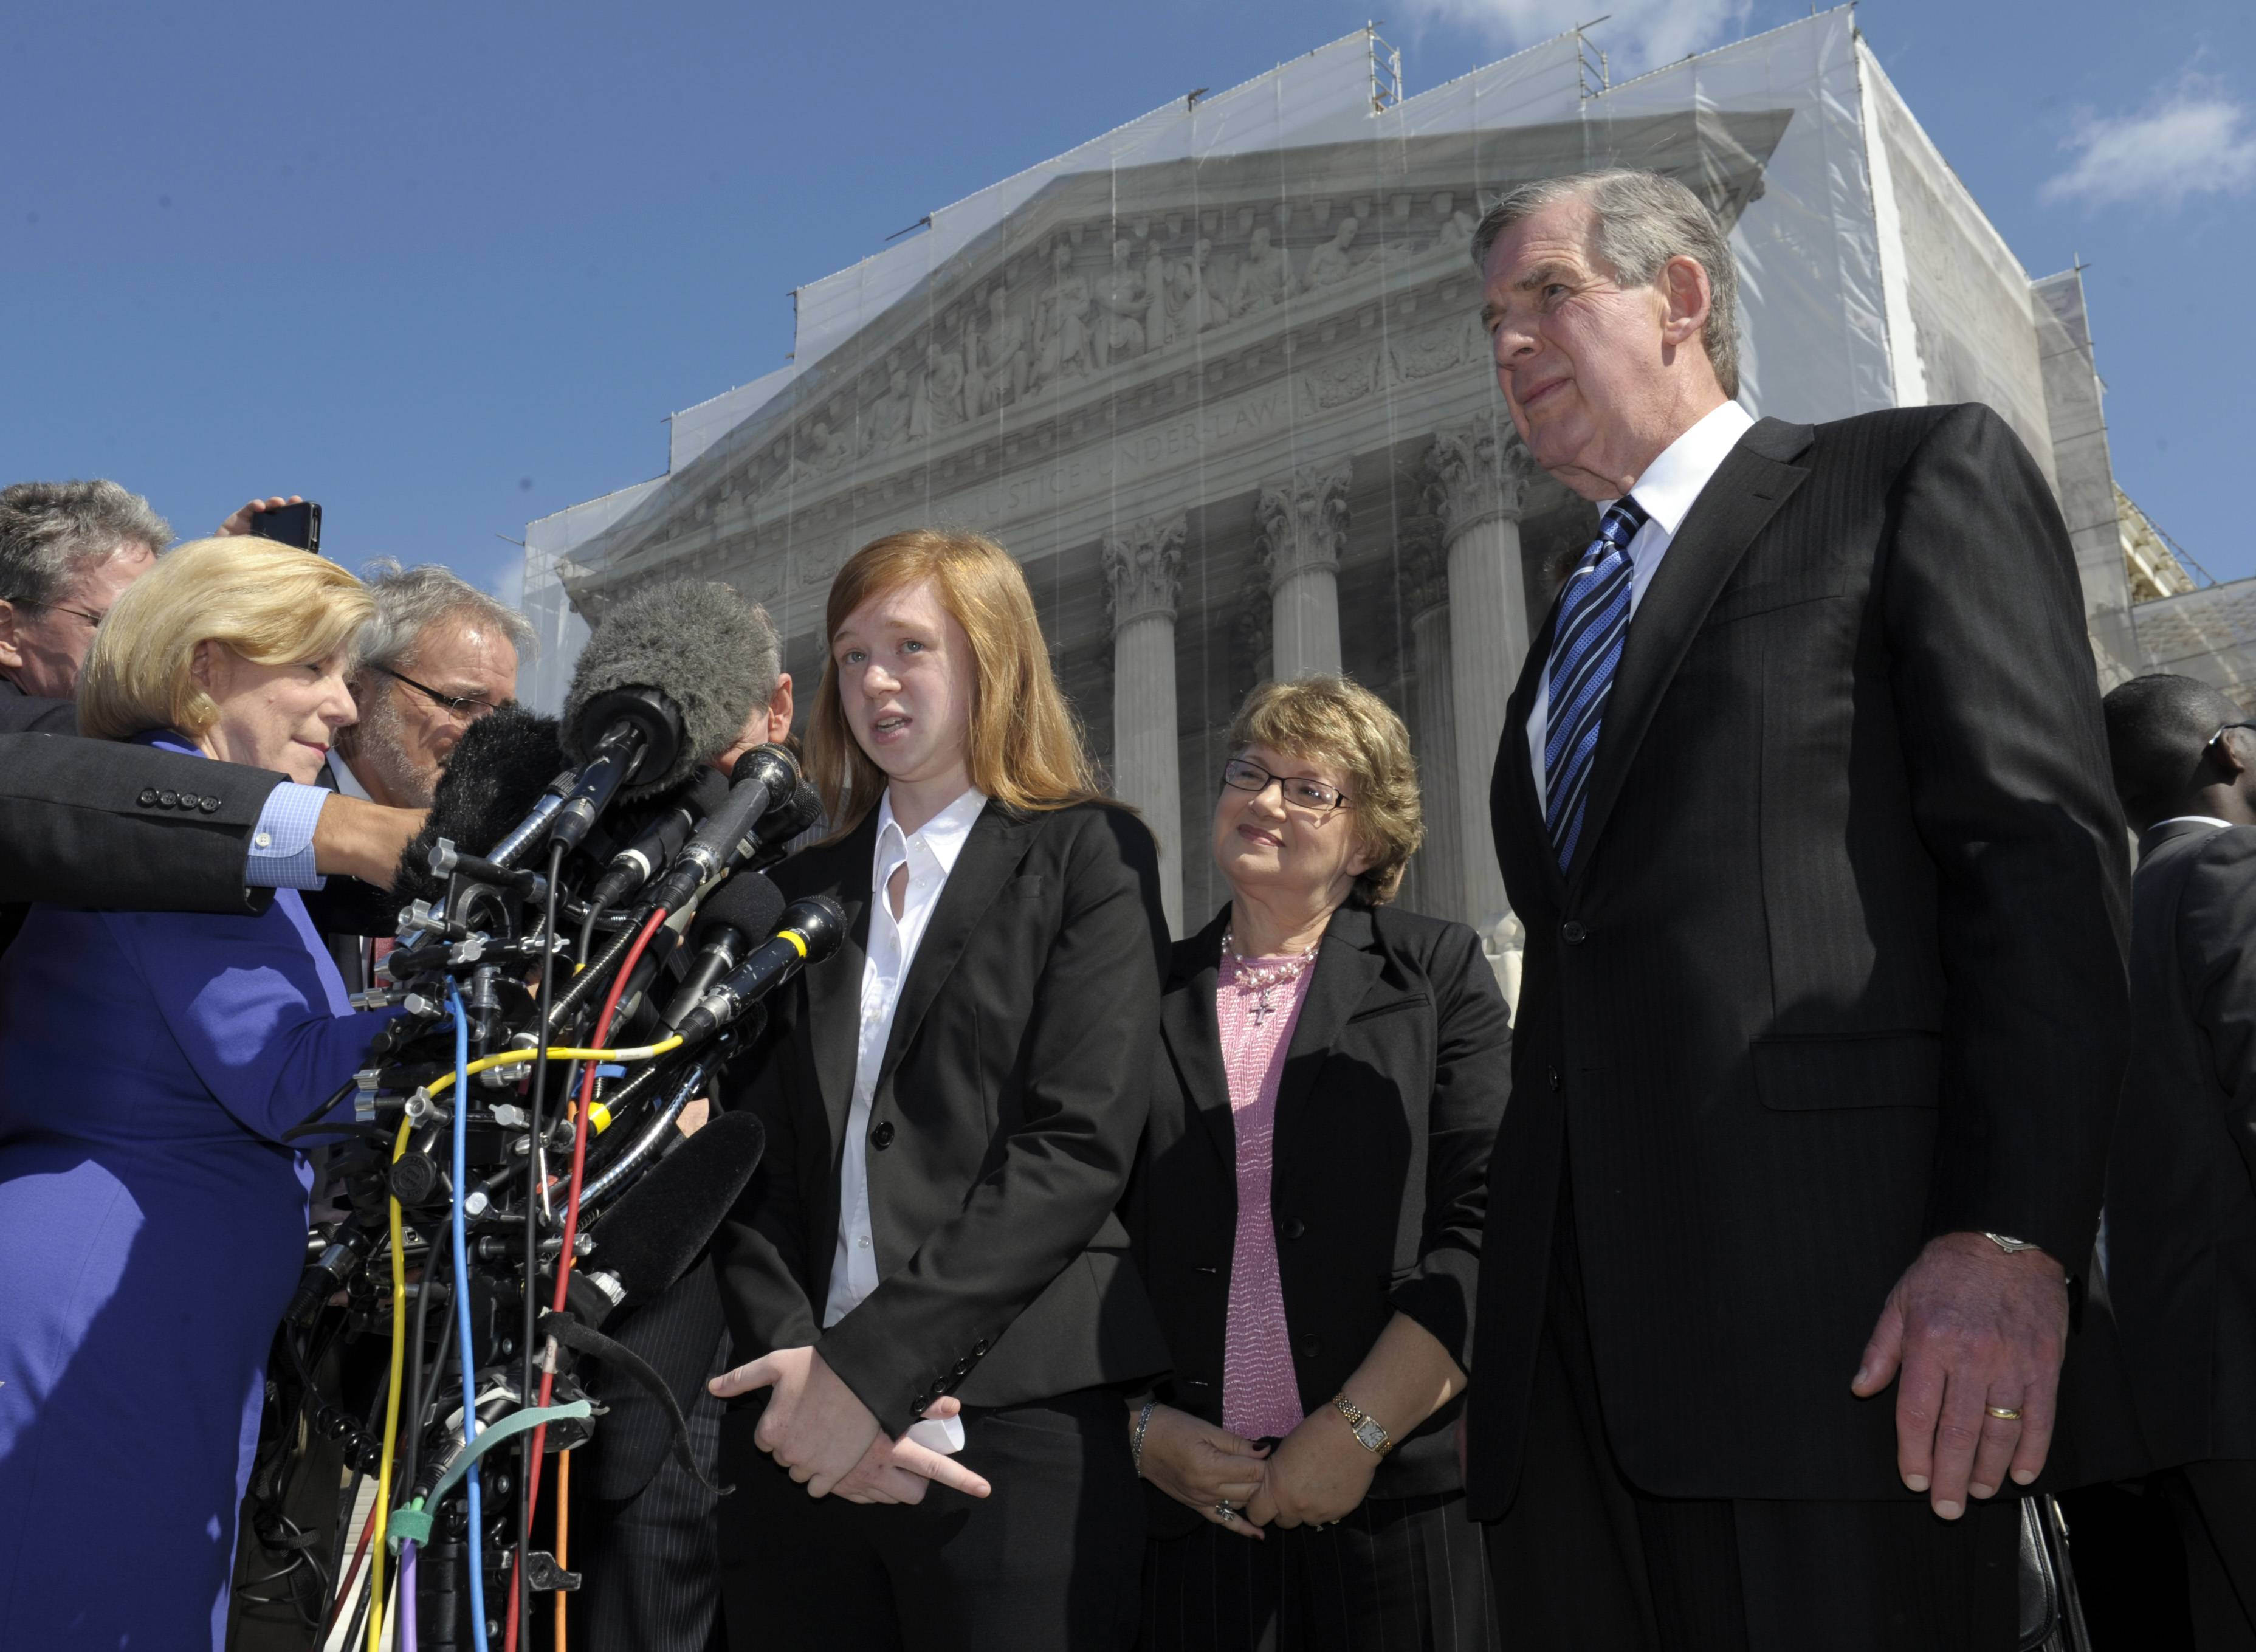 Abigail Fisher, the Texan involved in the University of Texas affirmative action case, accompanied by her attorney Bert Rein, right, talks to reporters Wednesday outside the Supreme Court in Washington. The Supreme Court is taking up a challenge to a University of Texas program that considers race in some college admissions. The case could produce new limits on affirmative action at universities, or roll it back entirely.